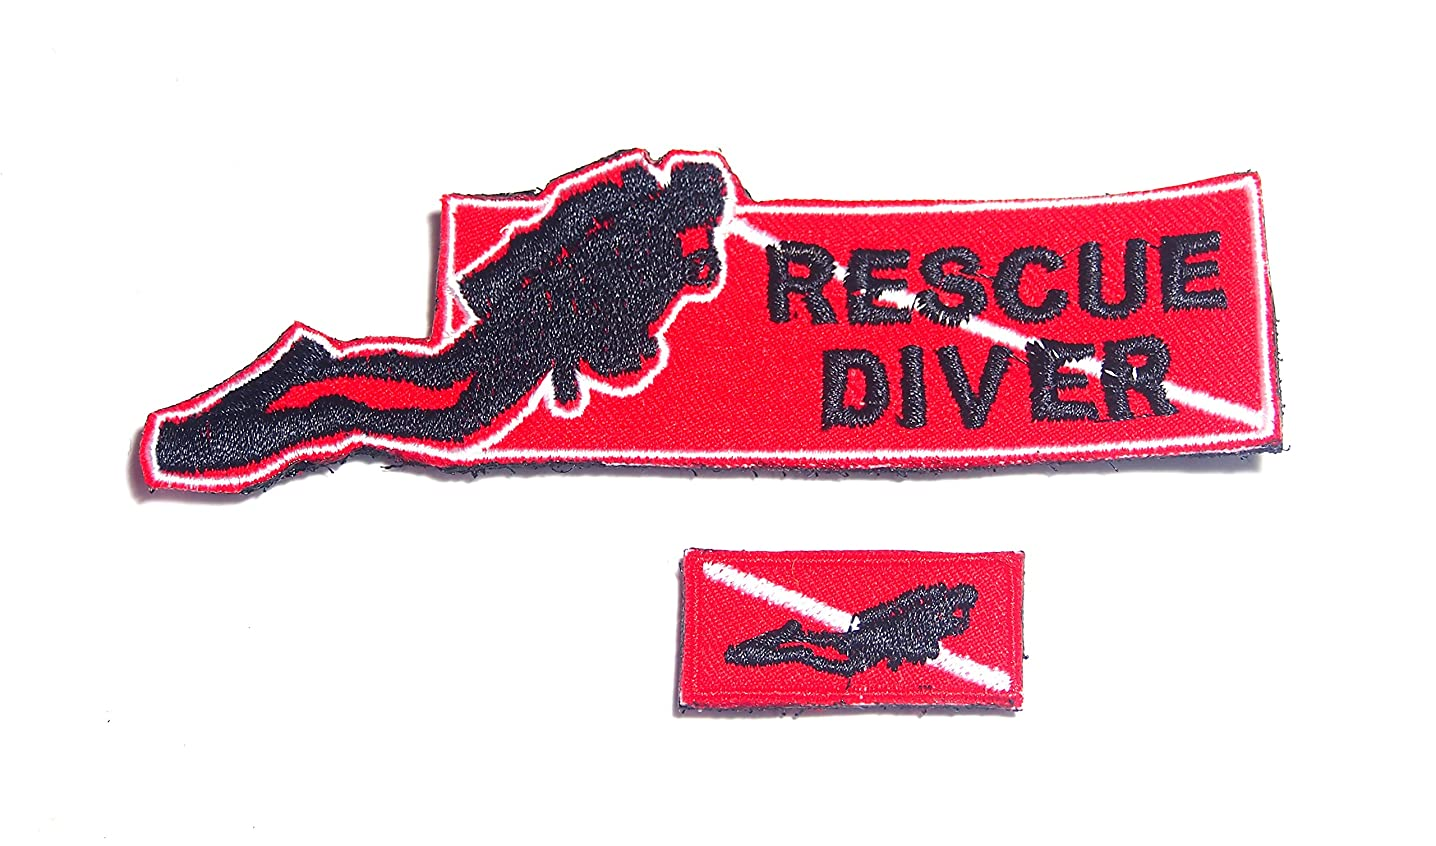 B57 Scuba Diving Diver Flag Rescue Embroidered Morale Patch 2 Pcs 12X3 cm and 3.5X1.5 cm Hook Backing (C)